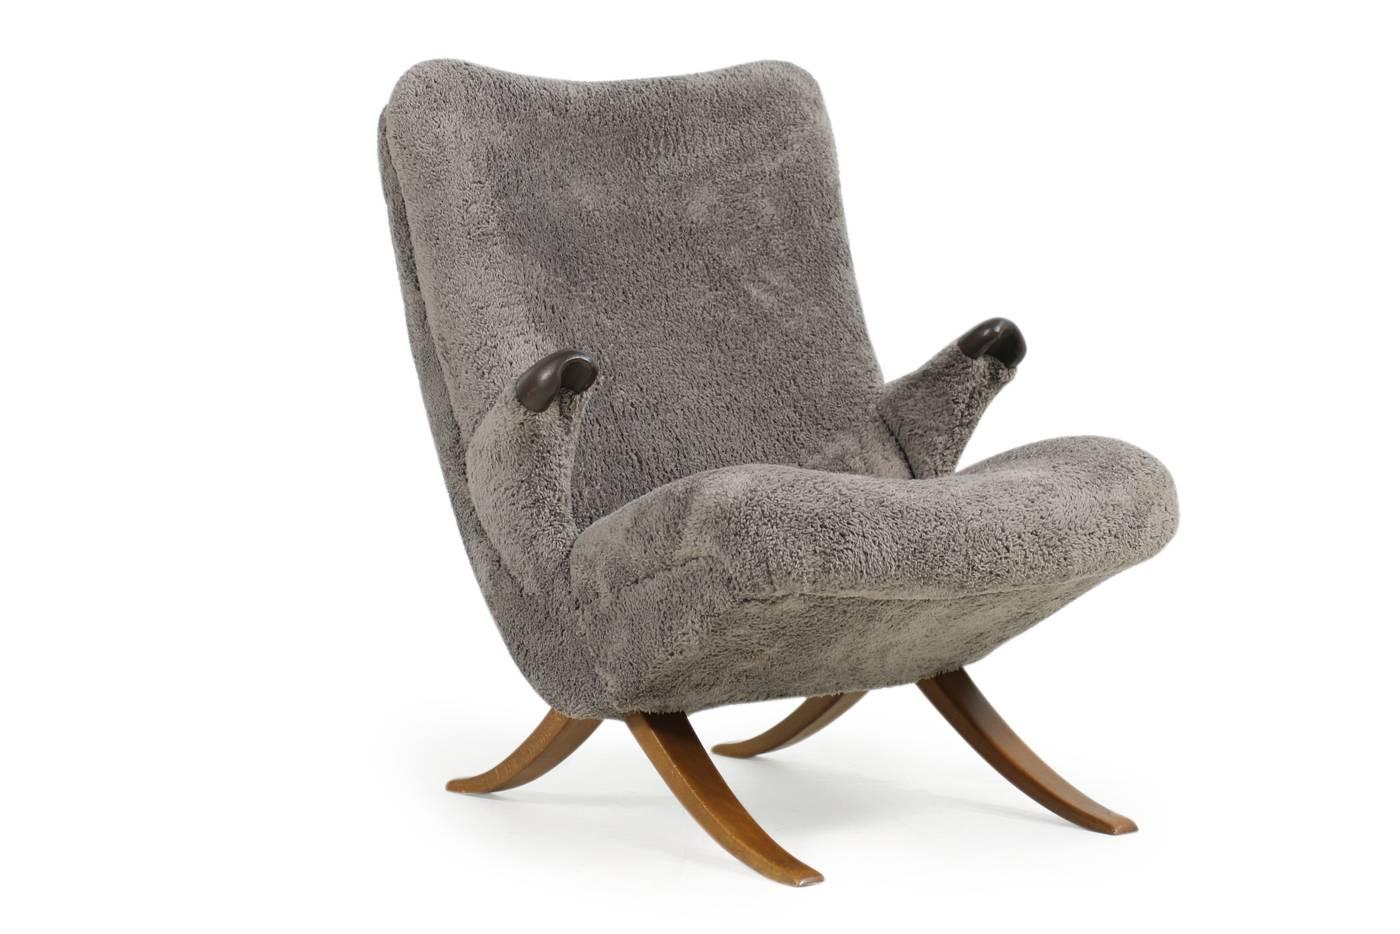 Beautiful And Very Rare 1950s Organic Lounge Chair, New Upholstery And  Covered With Super Soft